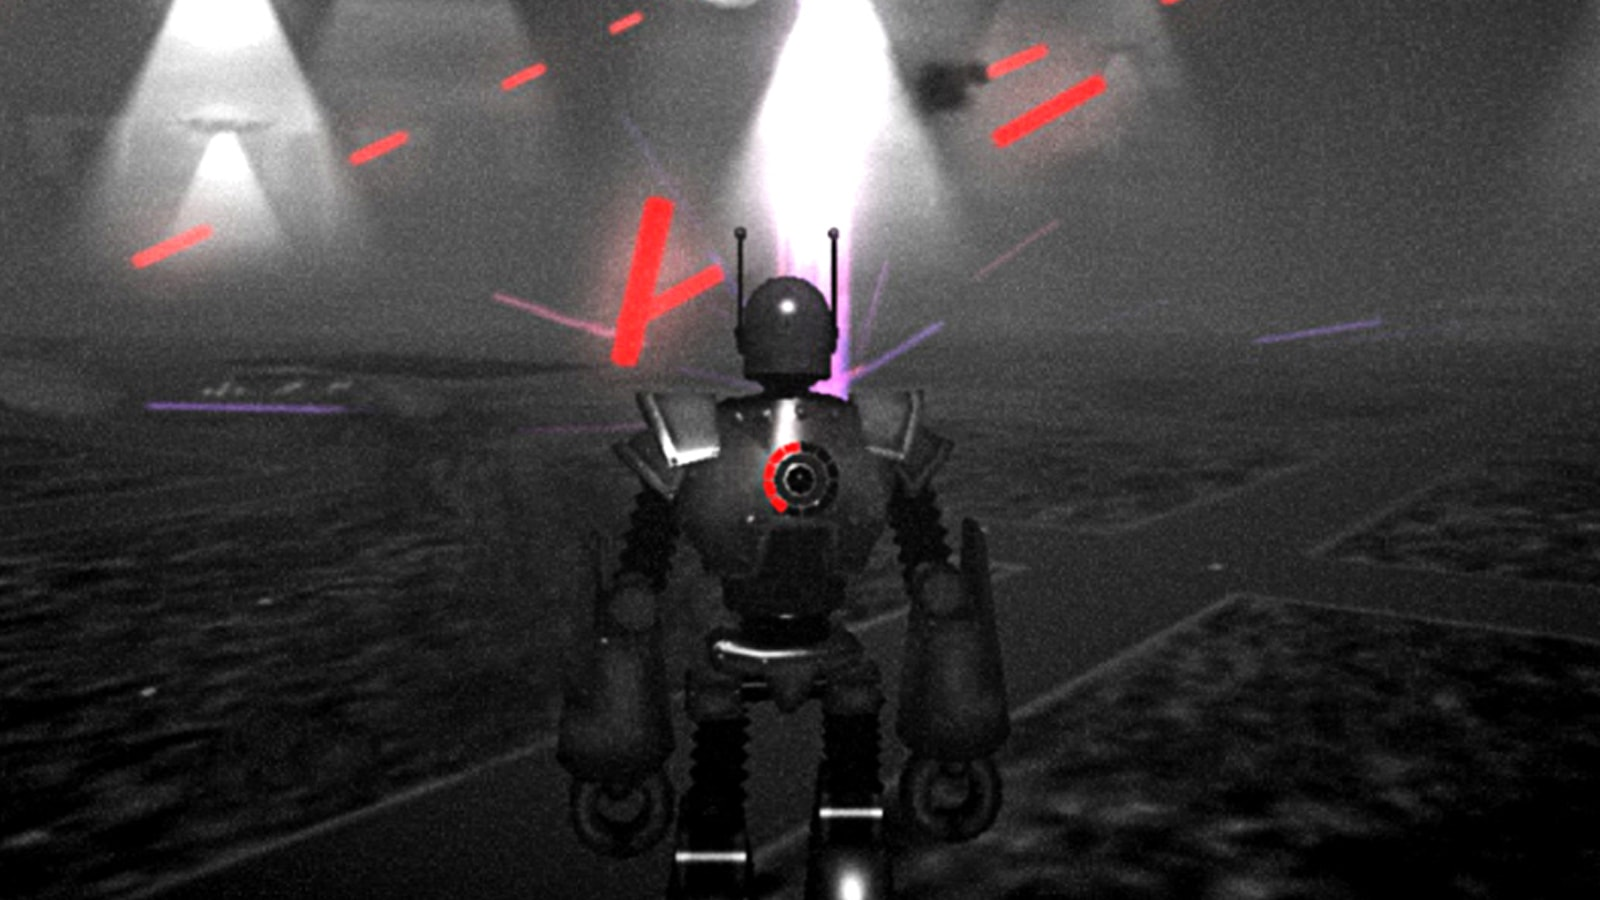 The backside of a large robot, red laser beams firing in the distance.